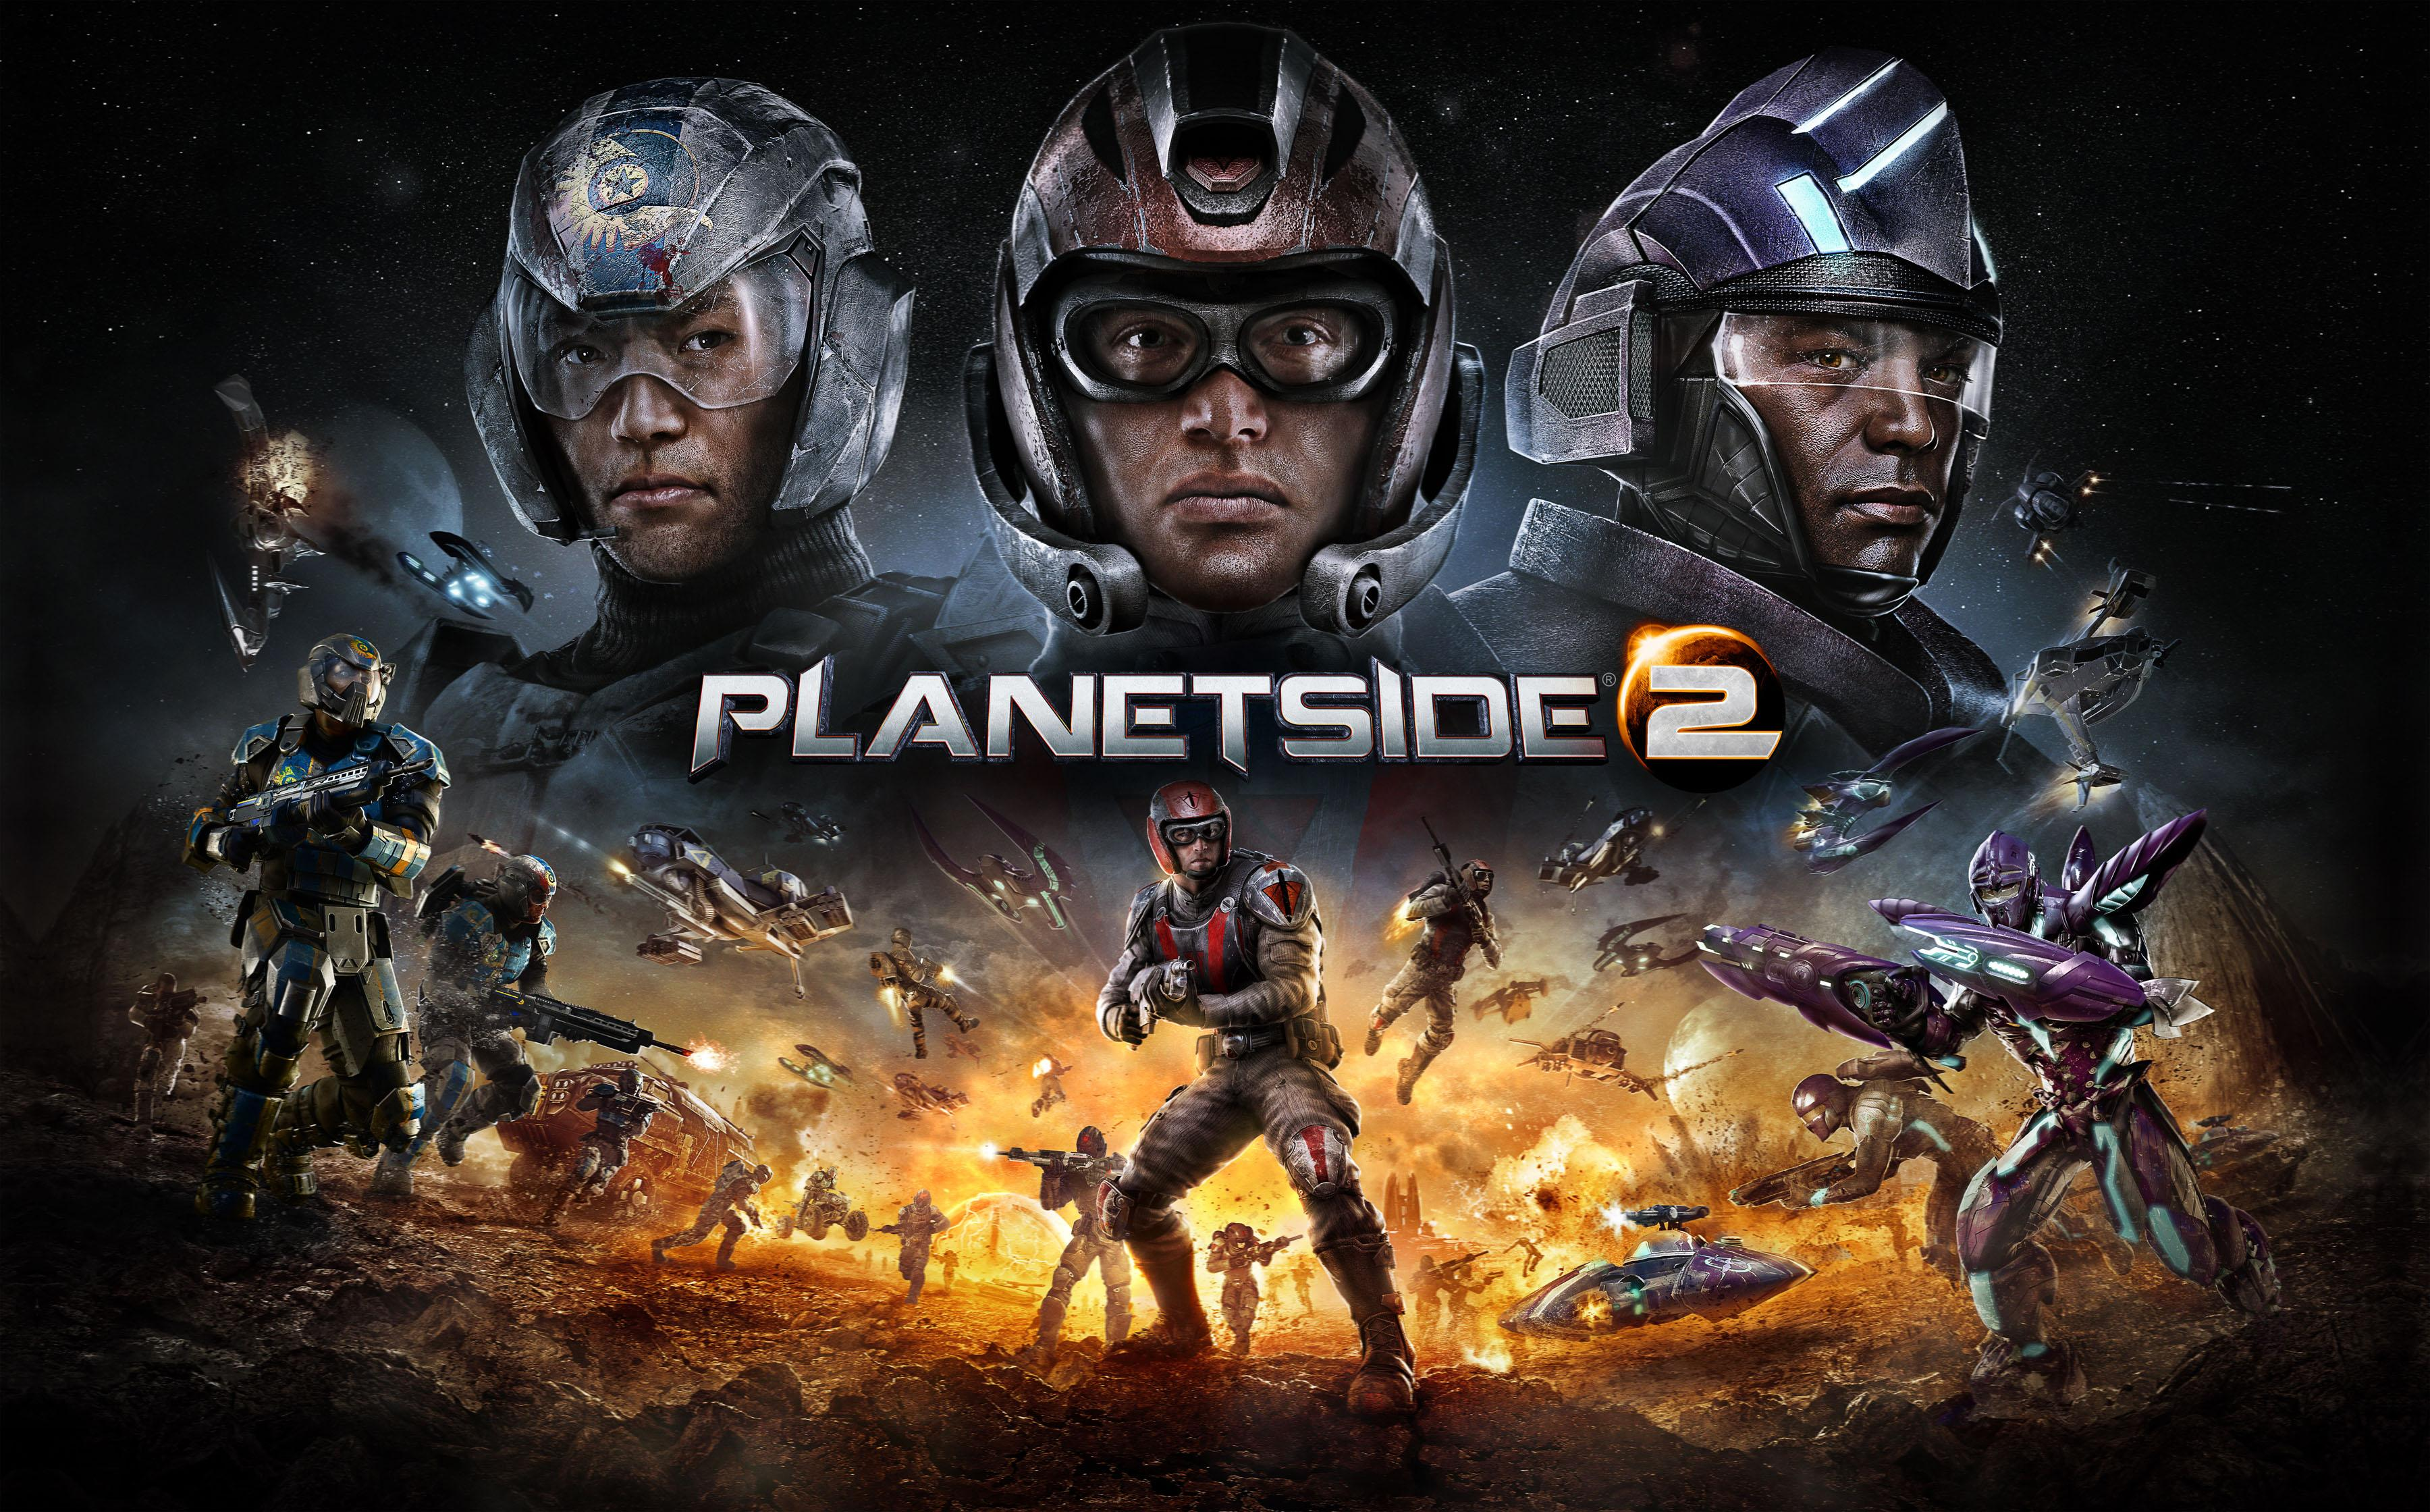 MarkvA/Five Things You Need to Know About PlanetSide 2